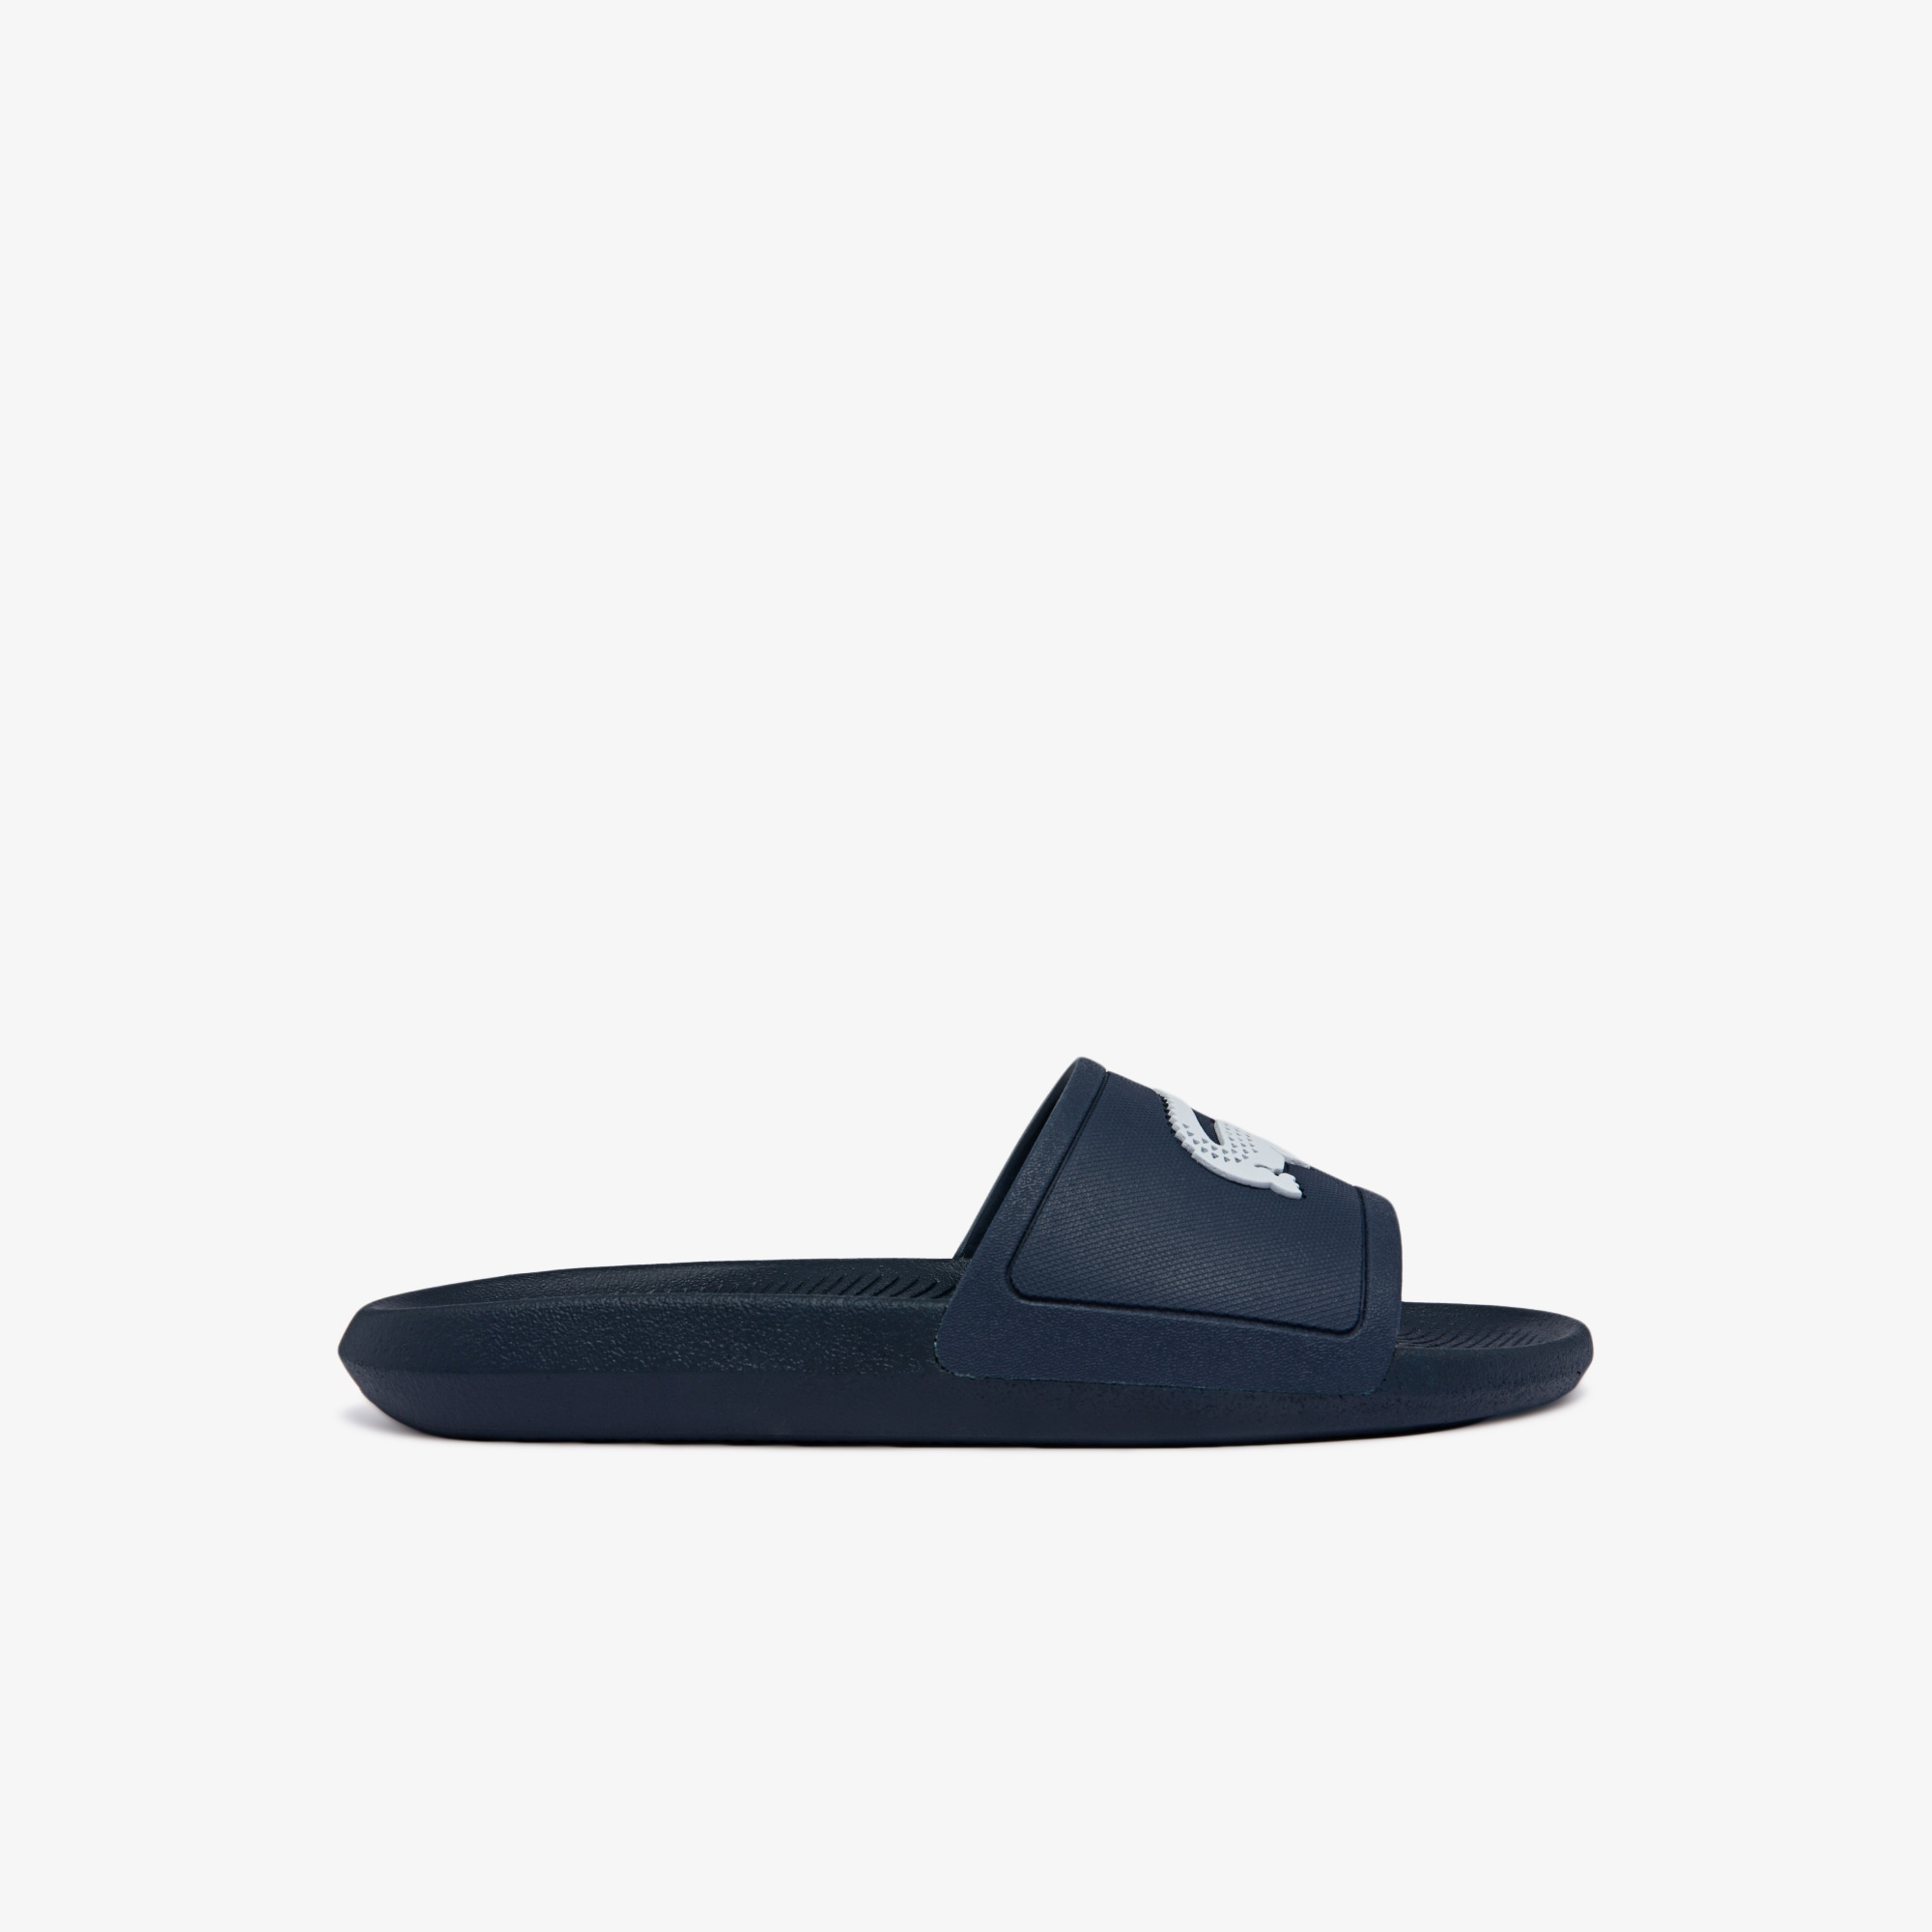 623137e85d Chaussures homme   Collection Homme   LACOSTE